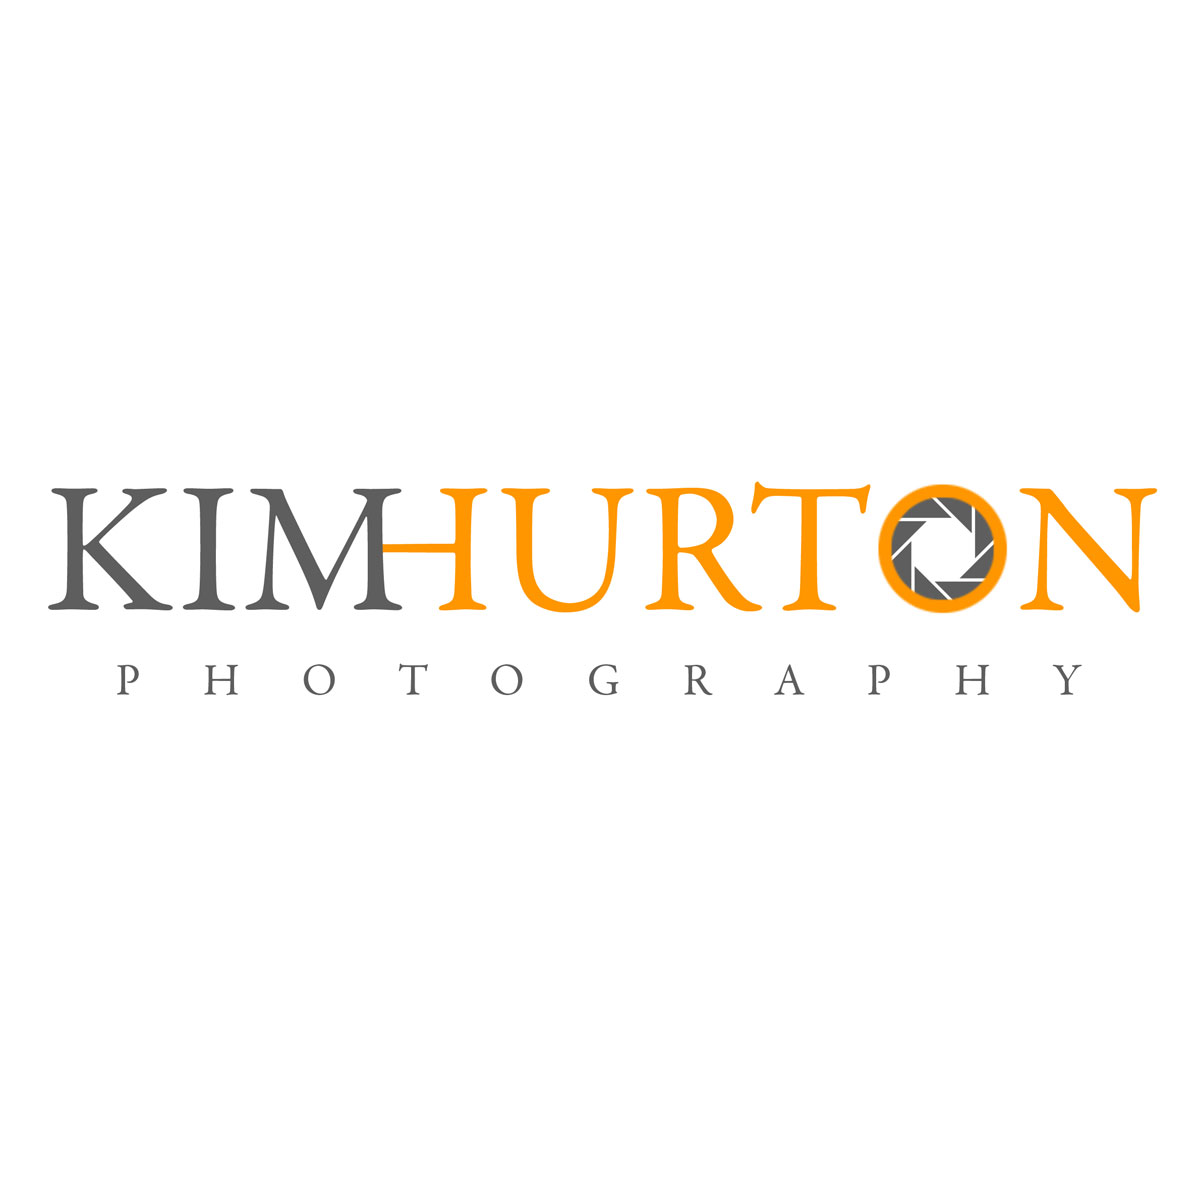 Kim Hurton Wedding Photography Logo - logo design by PixelDuck